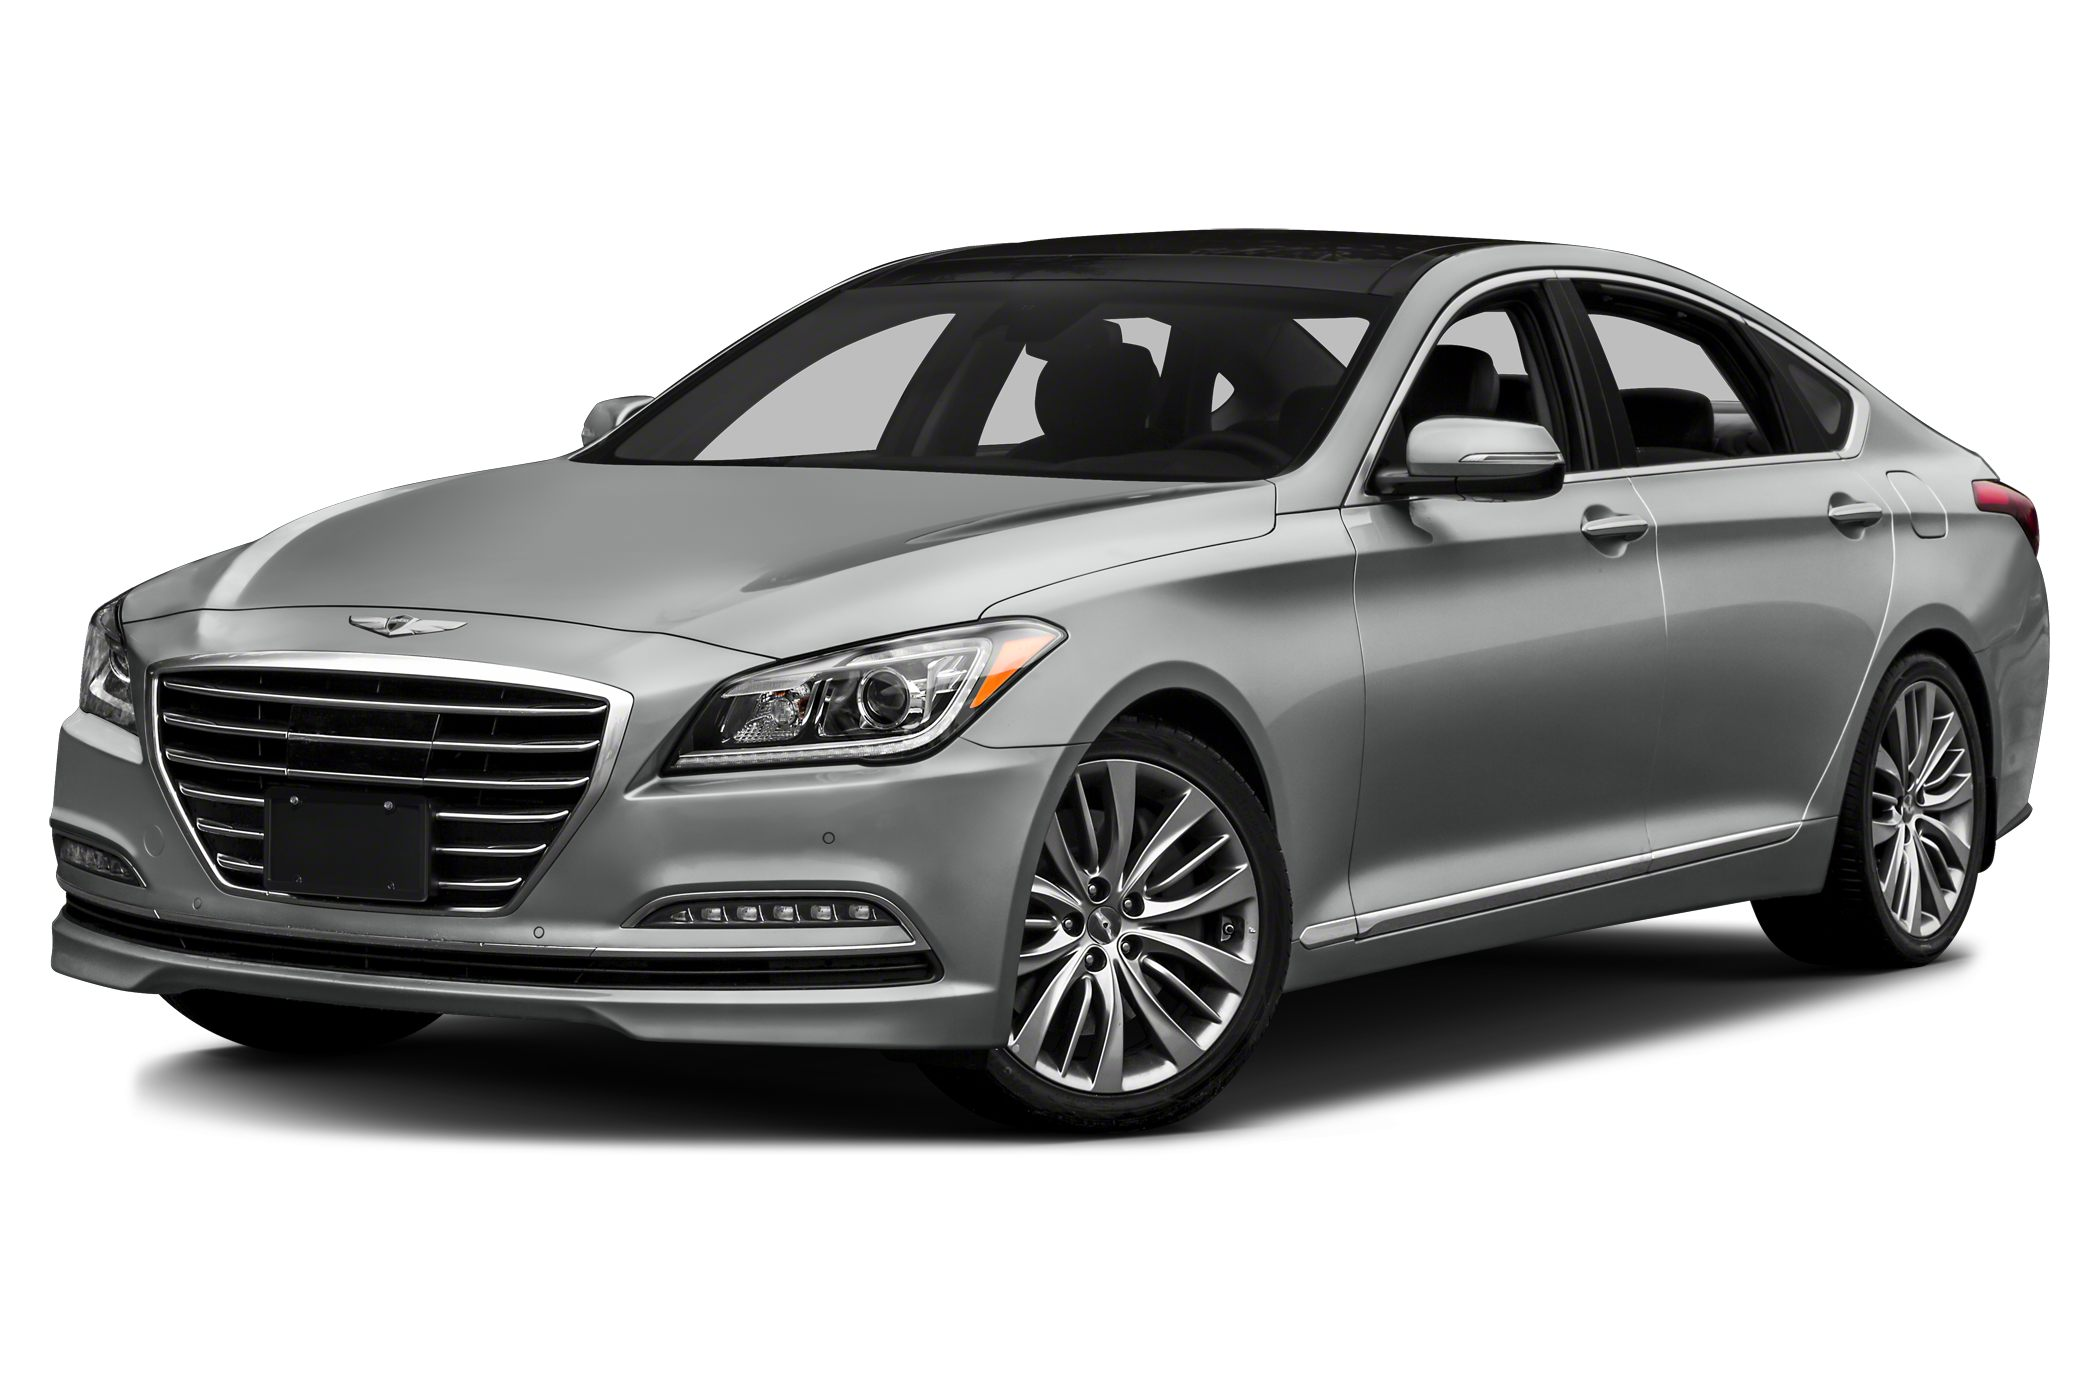 2015 Hyundai Genesis 3.8 Sedan for sale in Rainbow City for $43,688 with 10 miles.